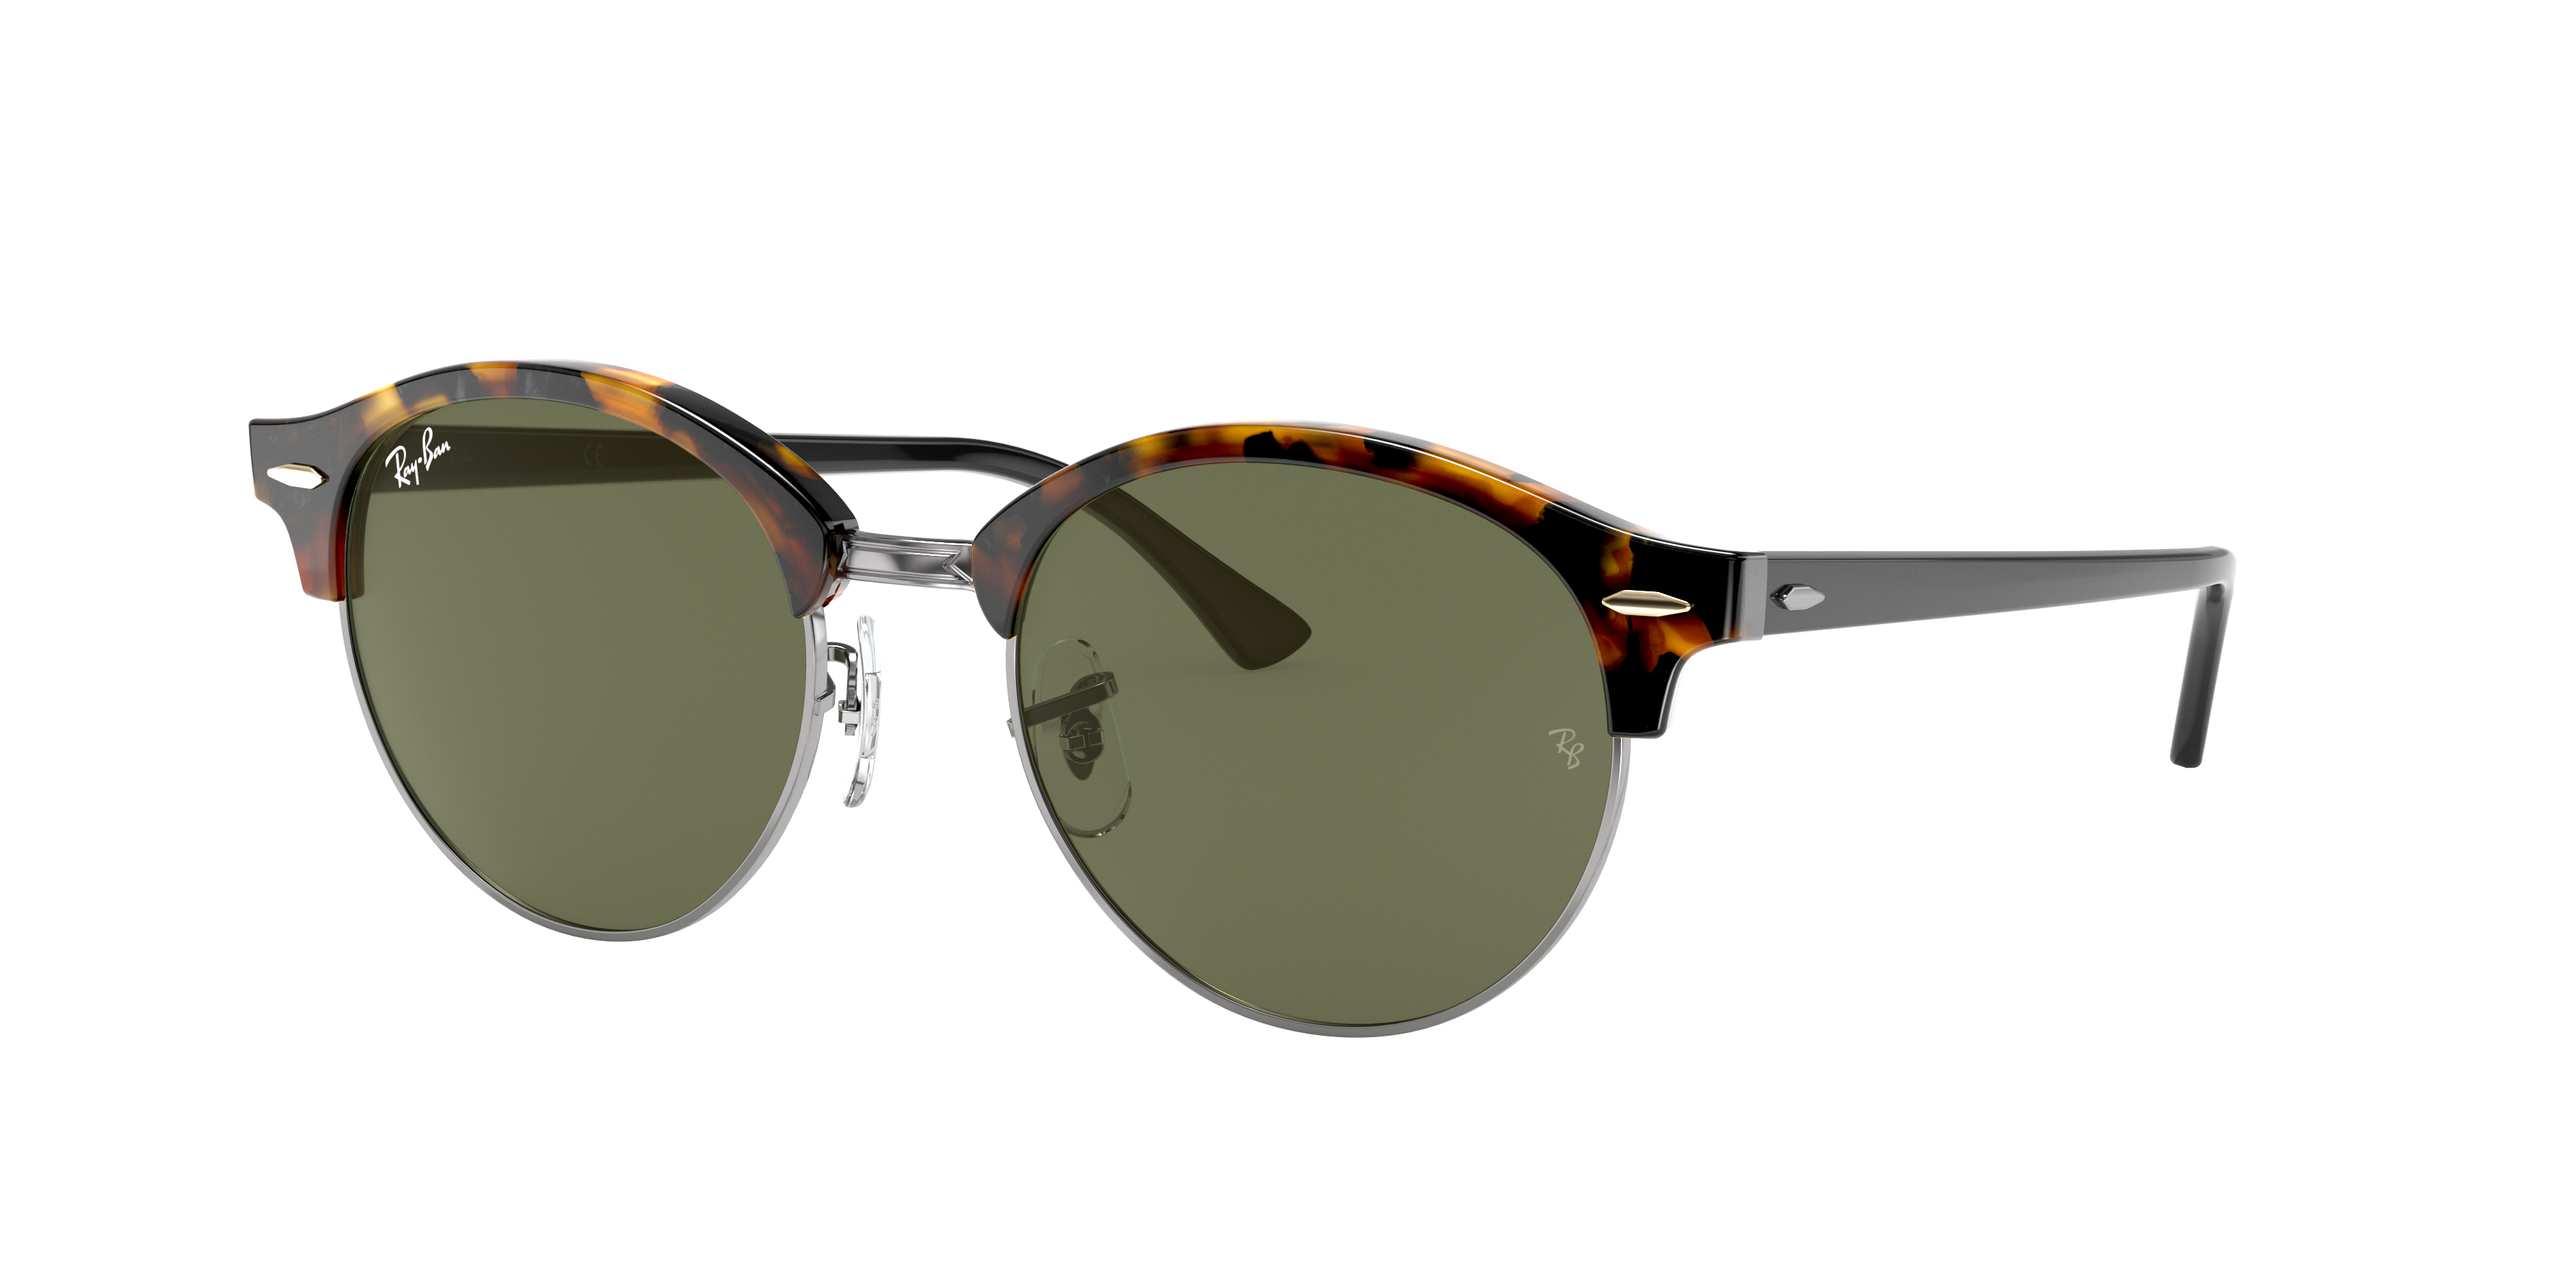 Ray-Ban Clubround Classic Black, Green Lenses - RB4246